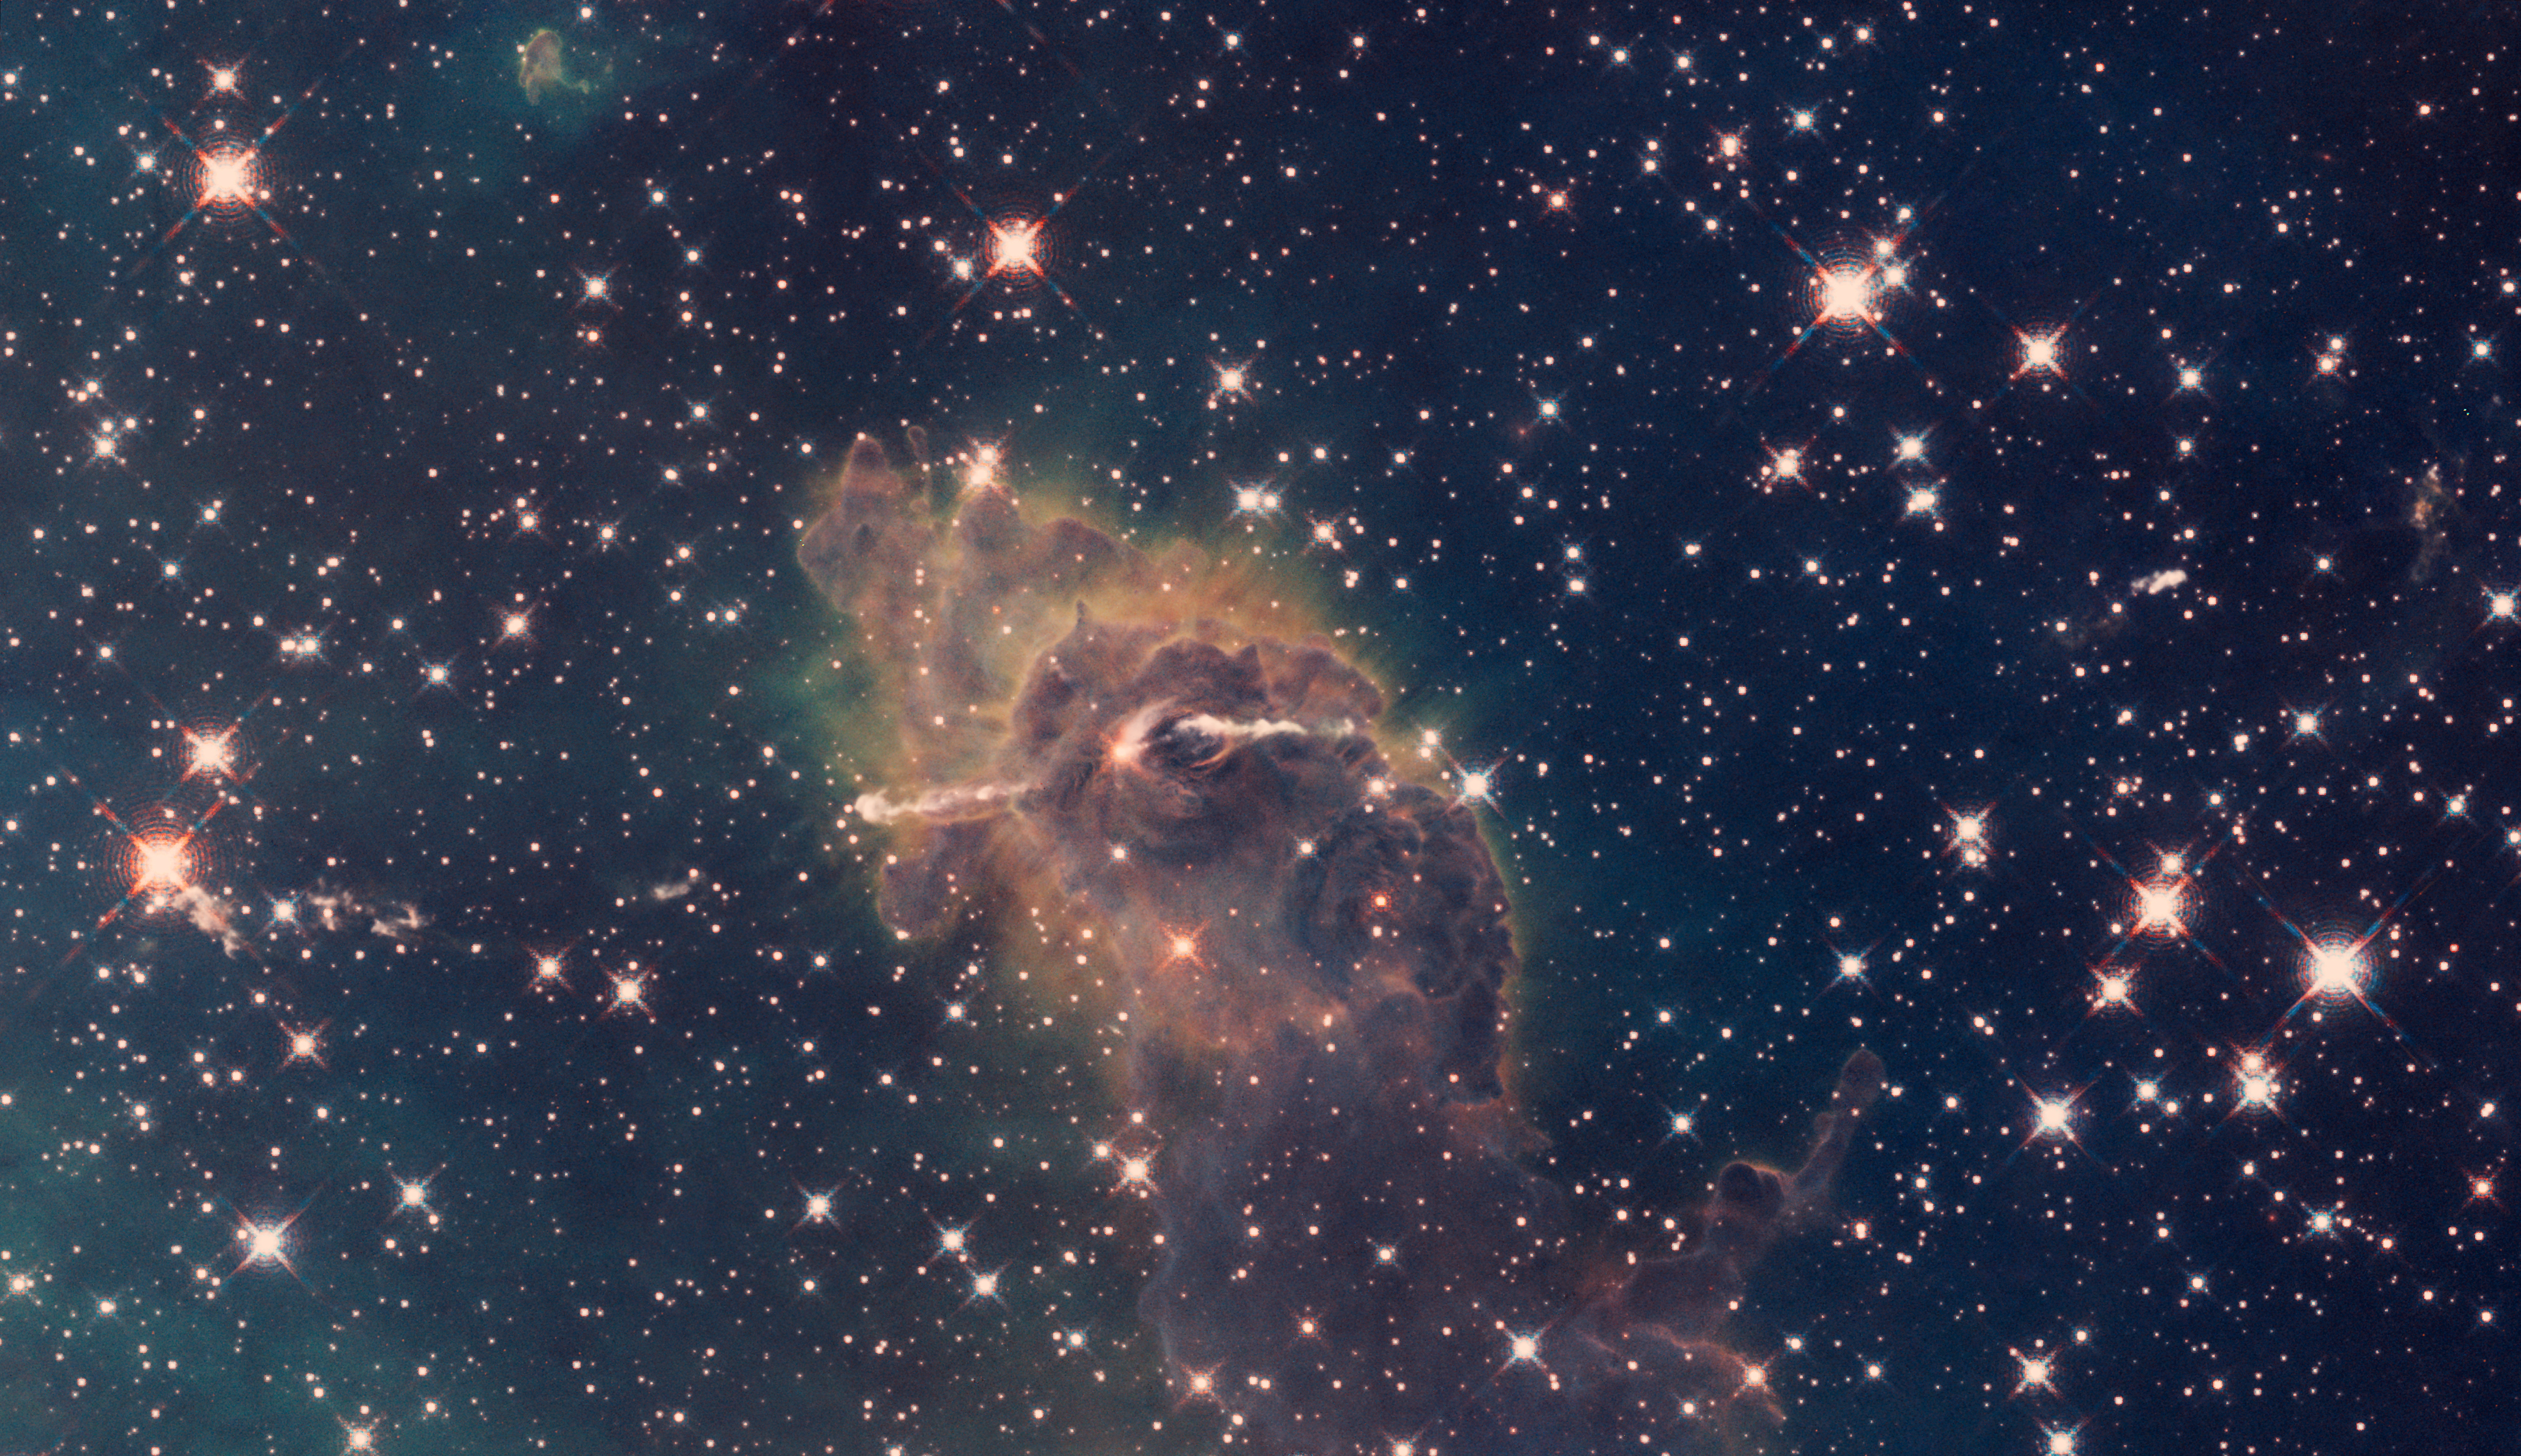 Carina Nebula composite of visible and infrared light (captured by the Hubble Space Telescope)